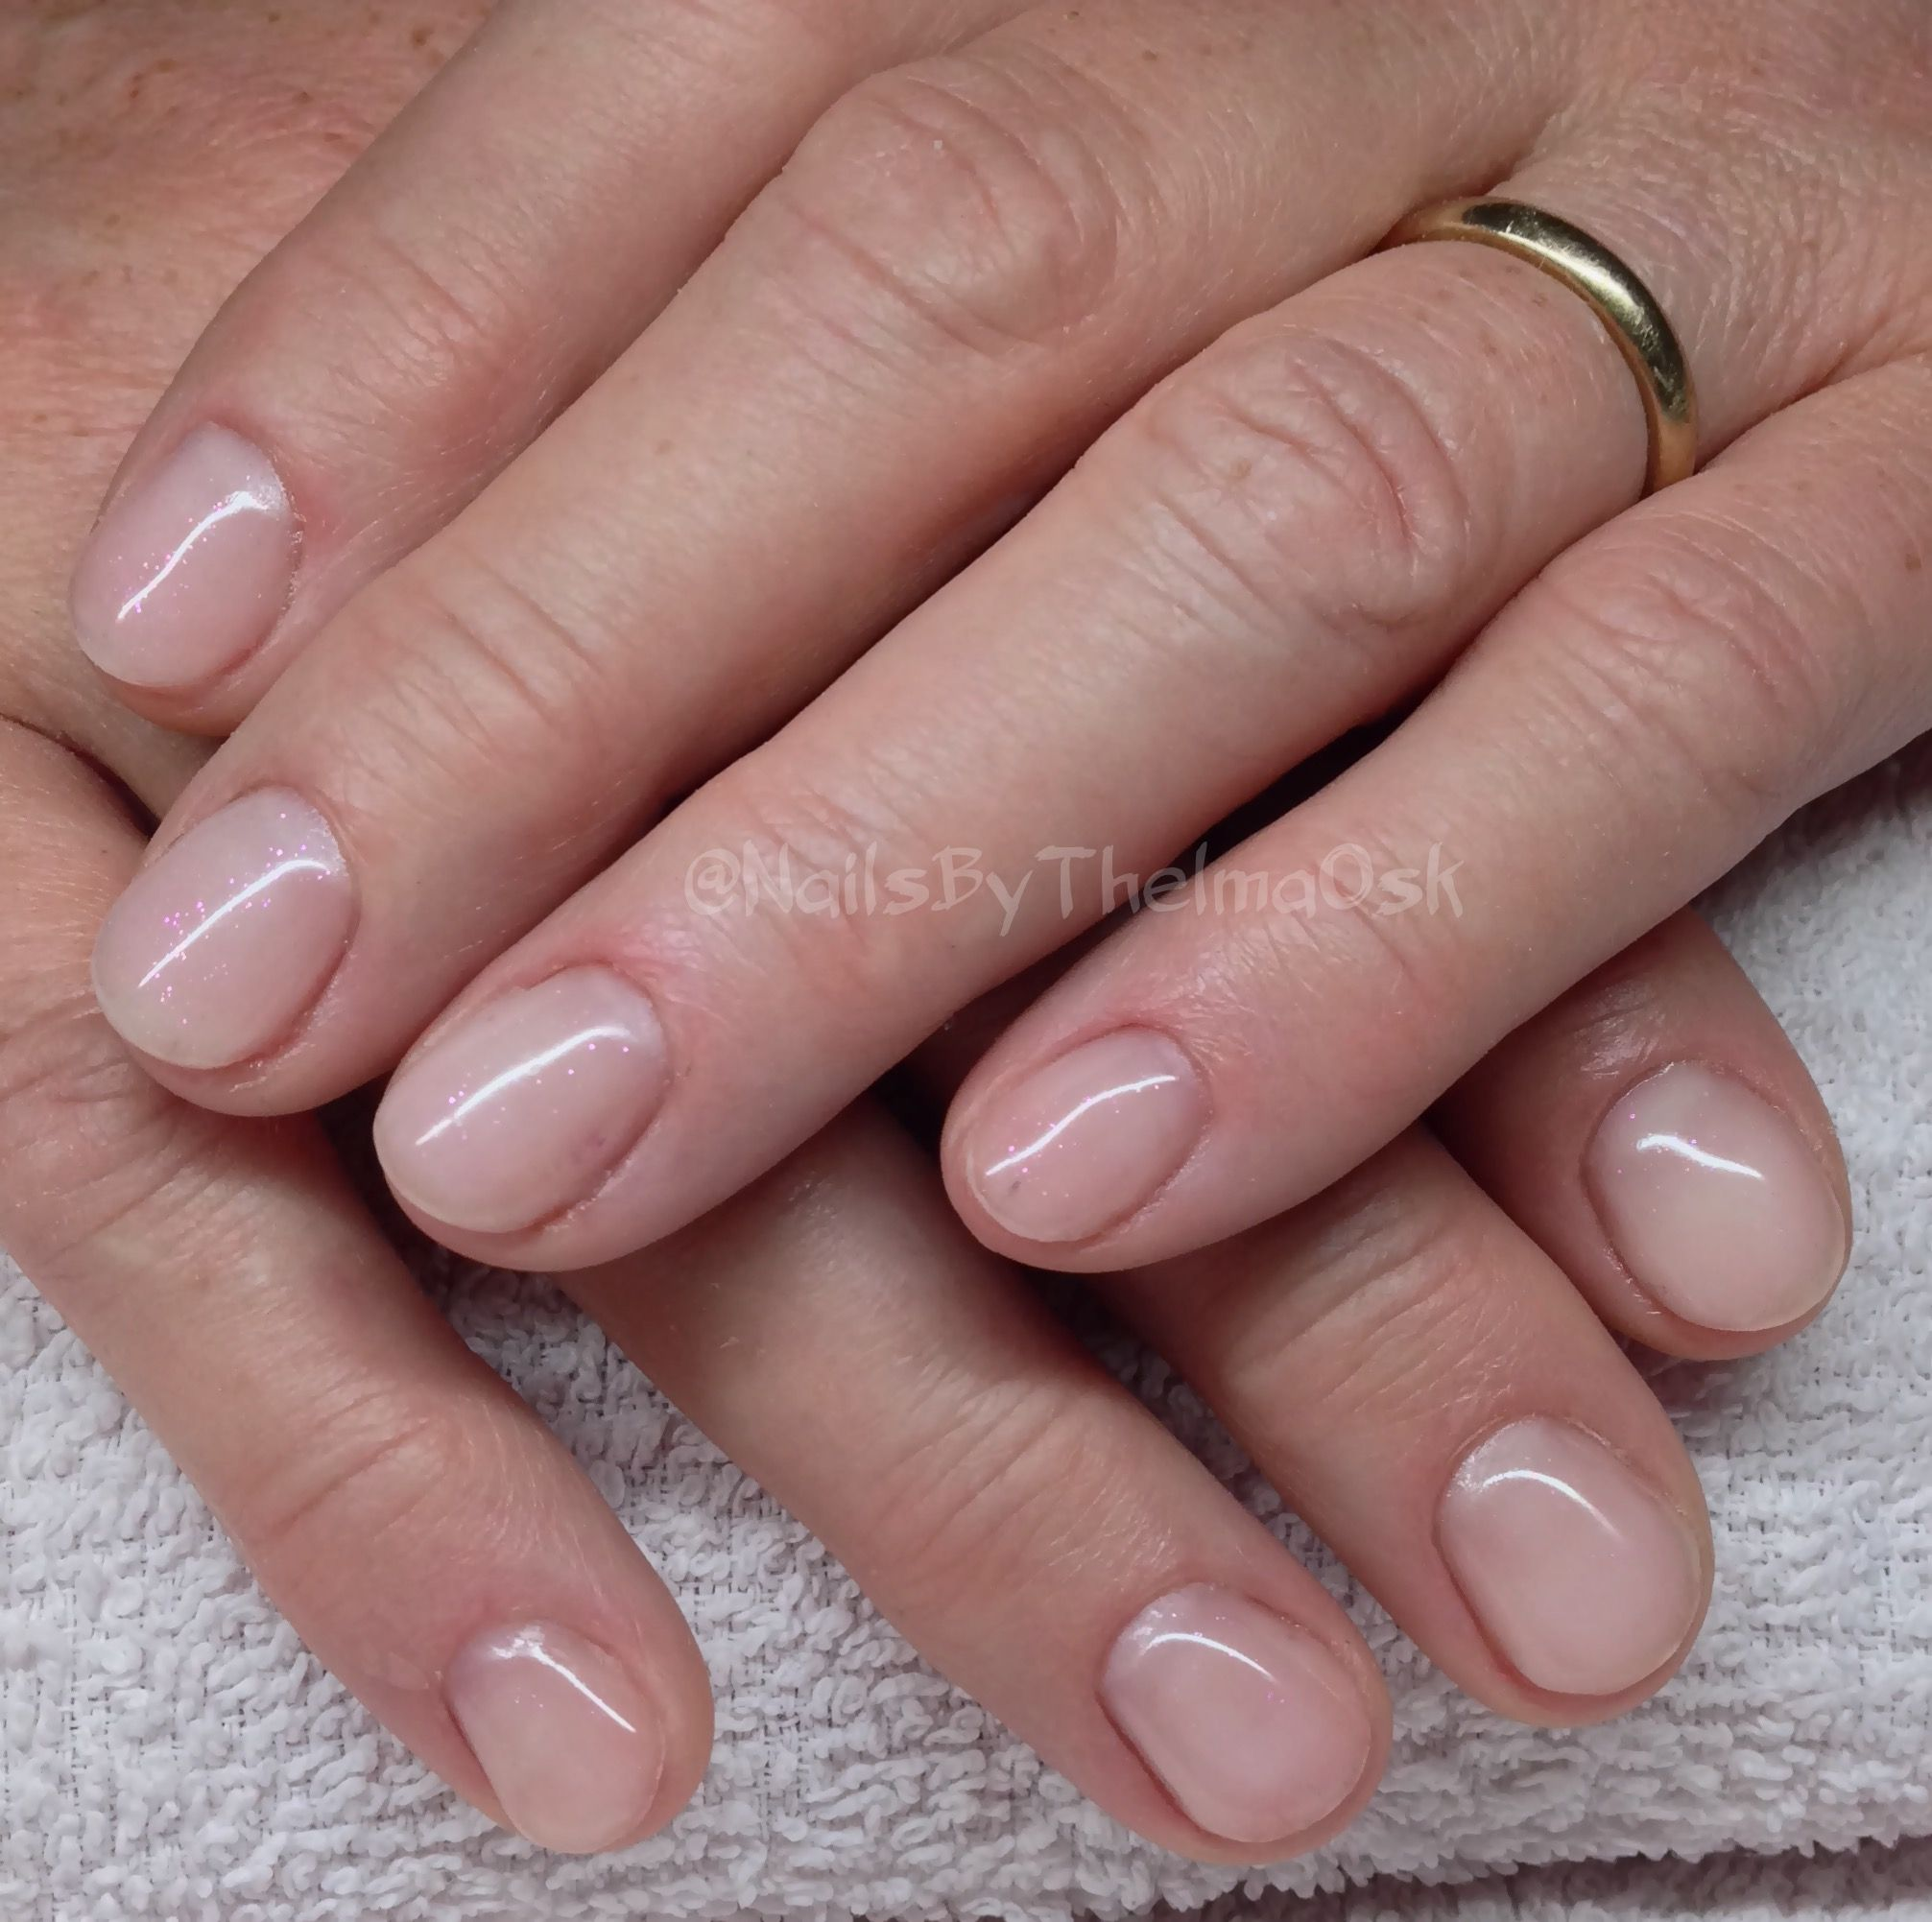 Beautiful Natural Soft Pink Gel Nails With A Hint Of Purple Shimmer Pink Gel Nails Glitter Gel Nails Gel Nails